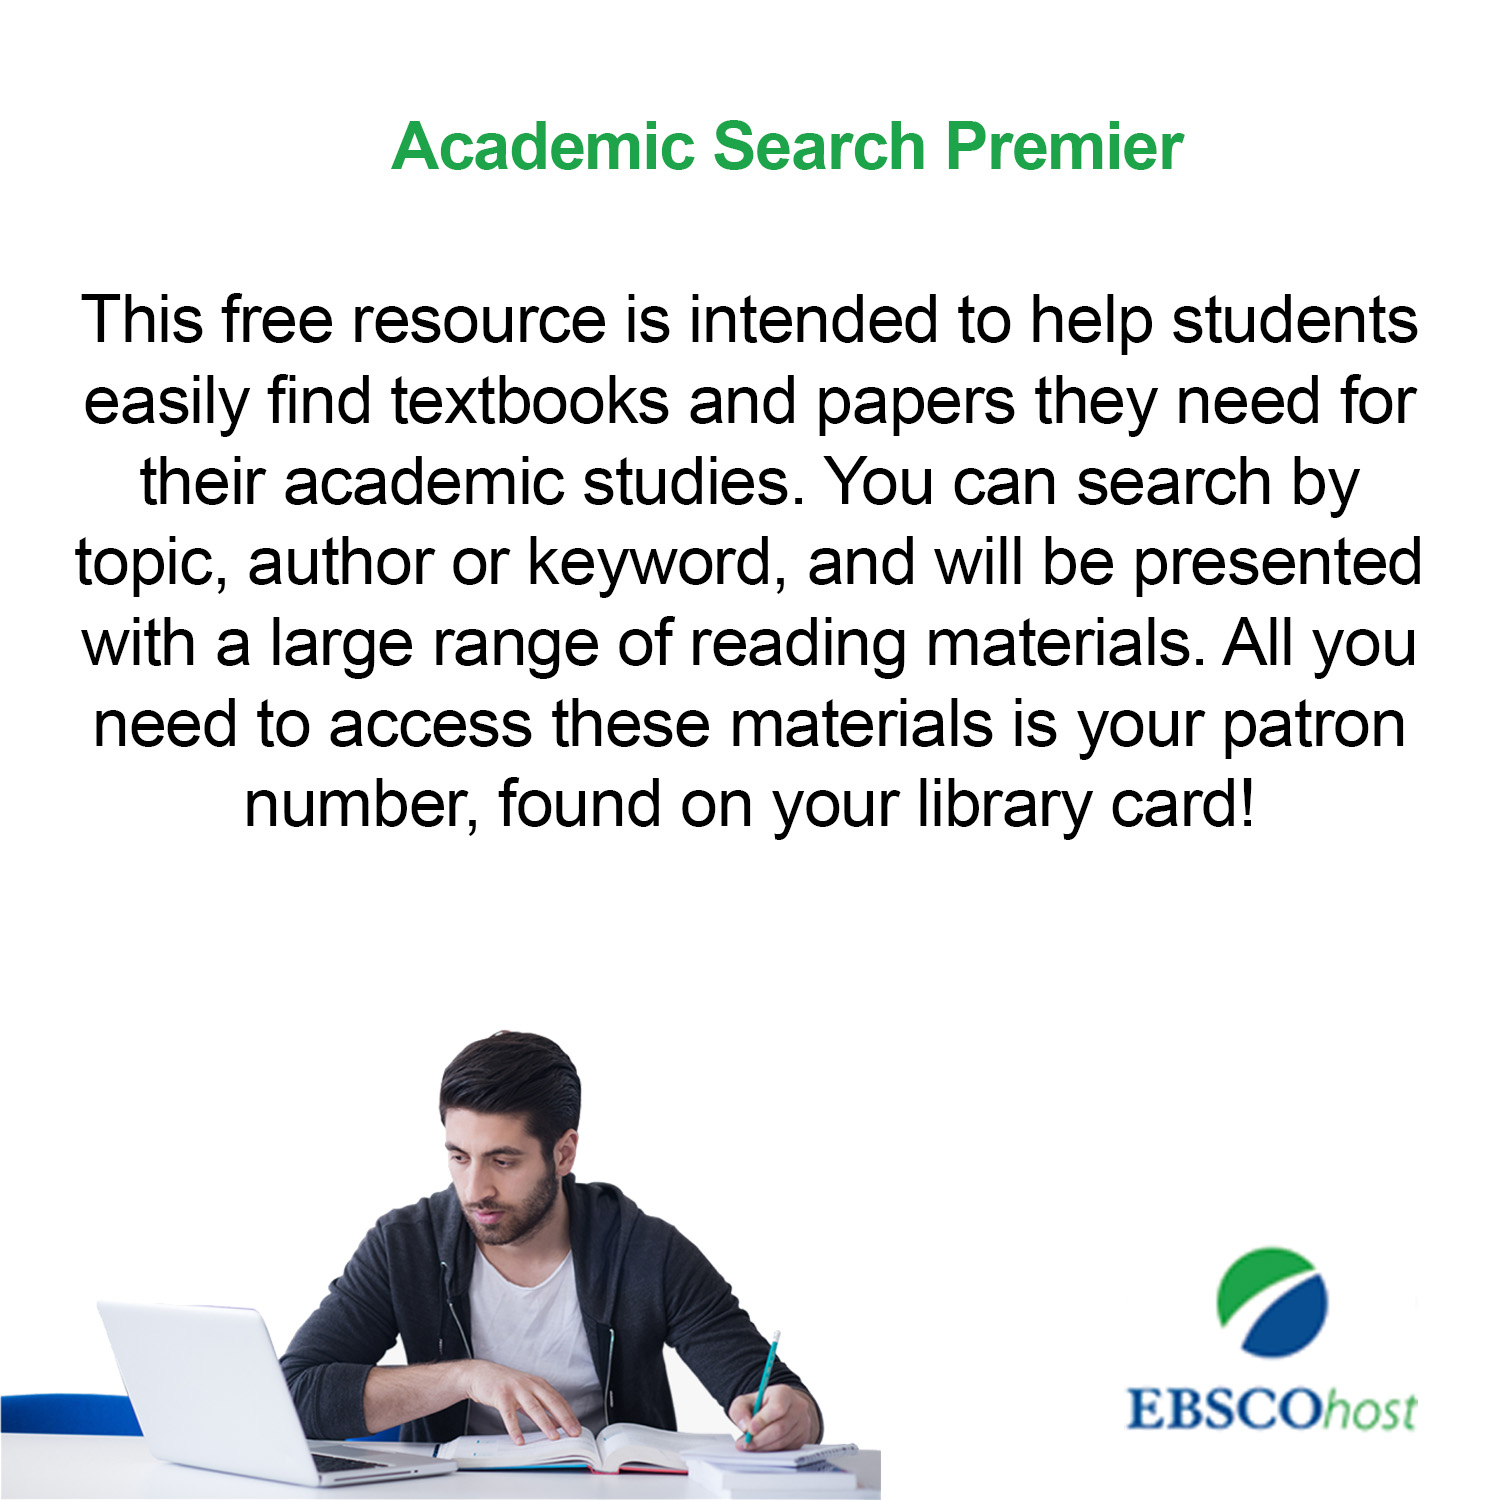 Small image with a synopsis and clickable link for EBSCO Academic database